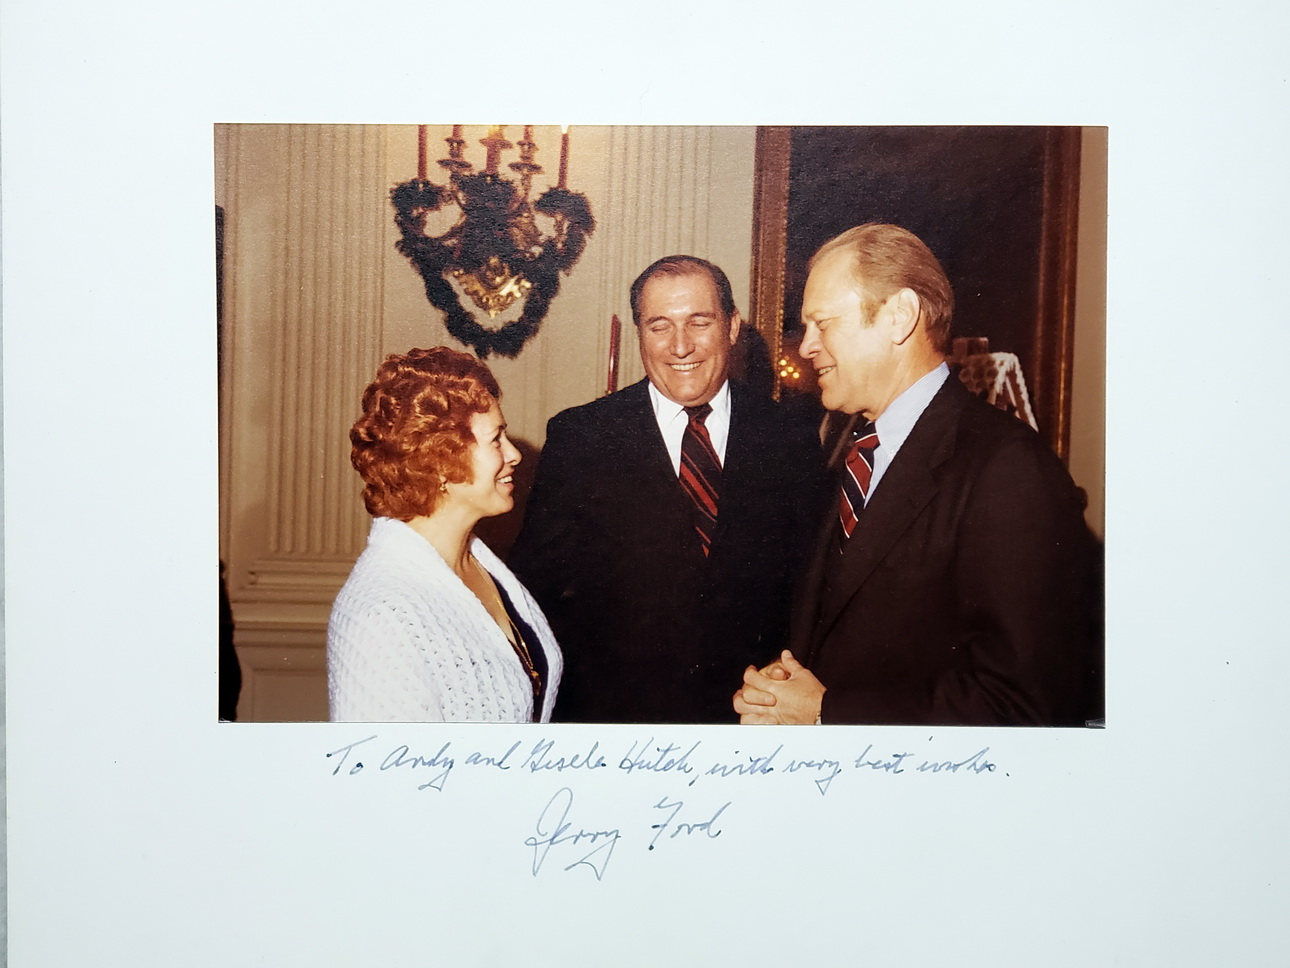 Image for 9 x 6 Inch Color Photograph, President Gerald Ford Inscribed to Andy (Andrew) Hutch and Wife Gisele